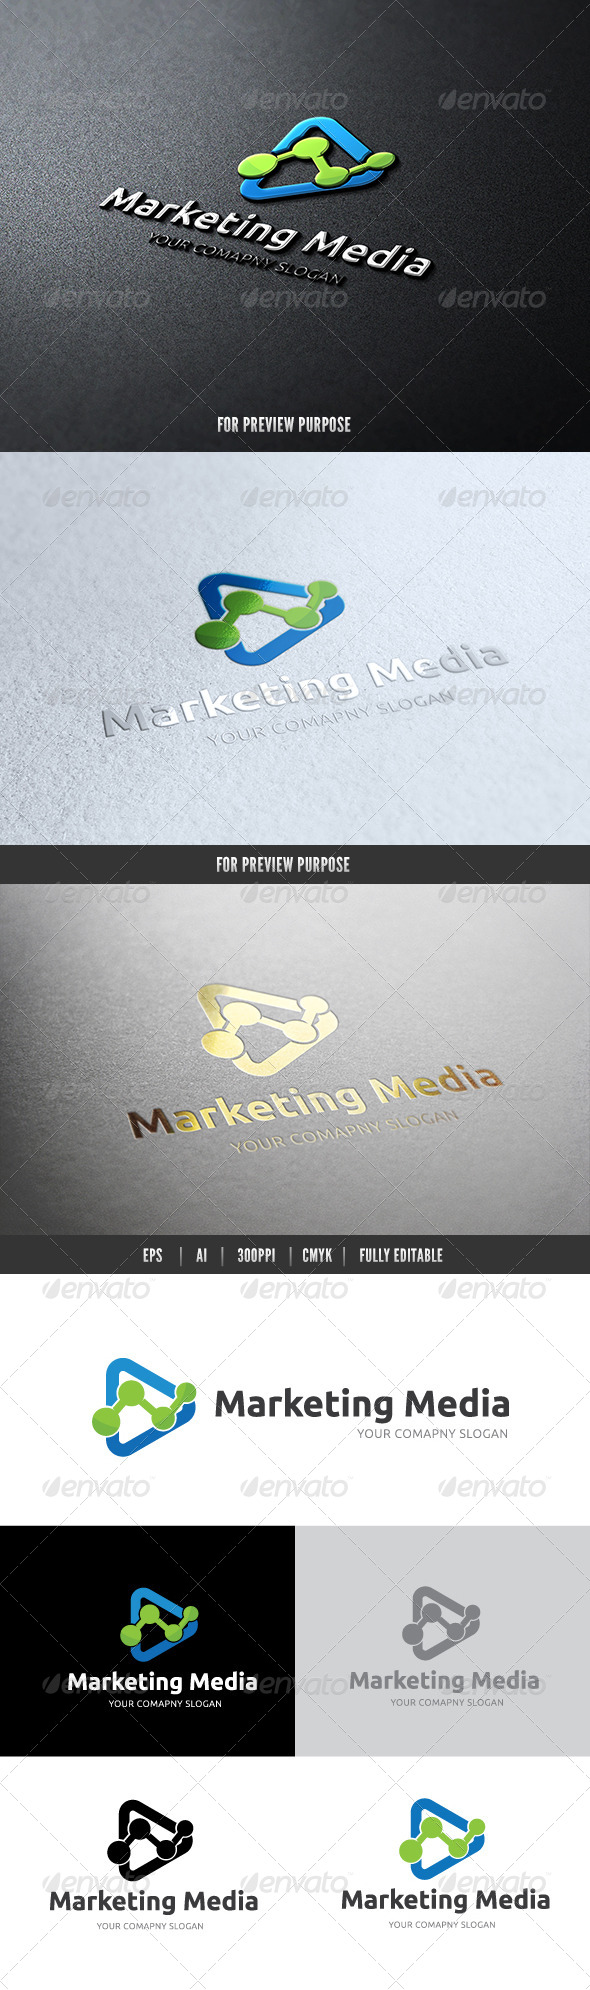 GraphicRiver Marketing Media 7324943